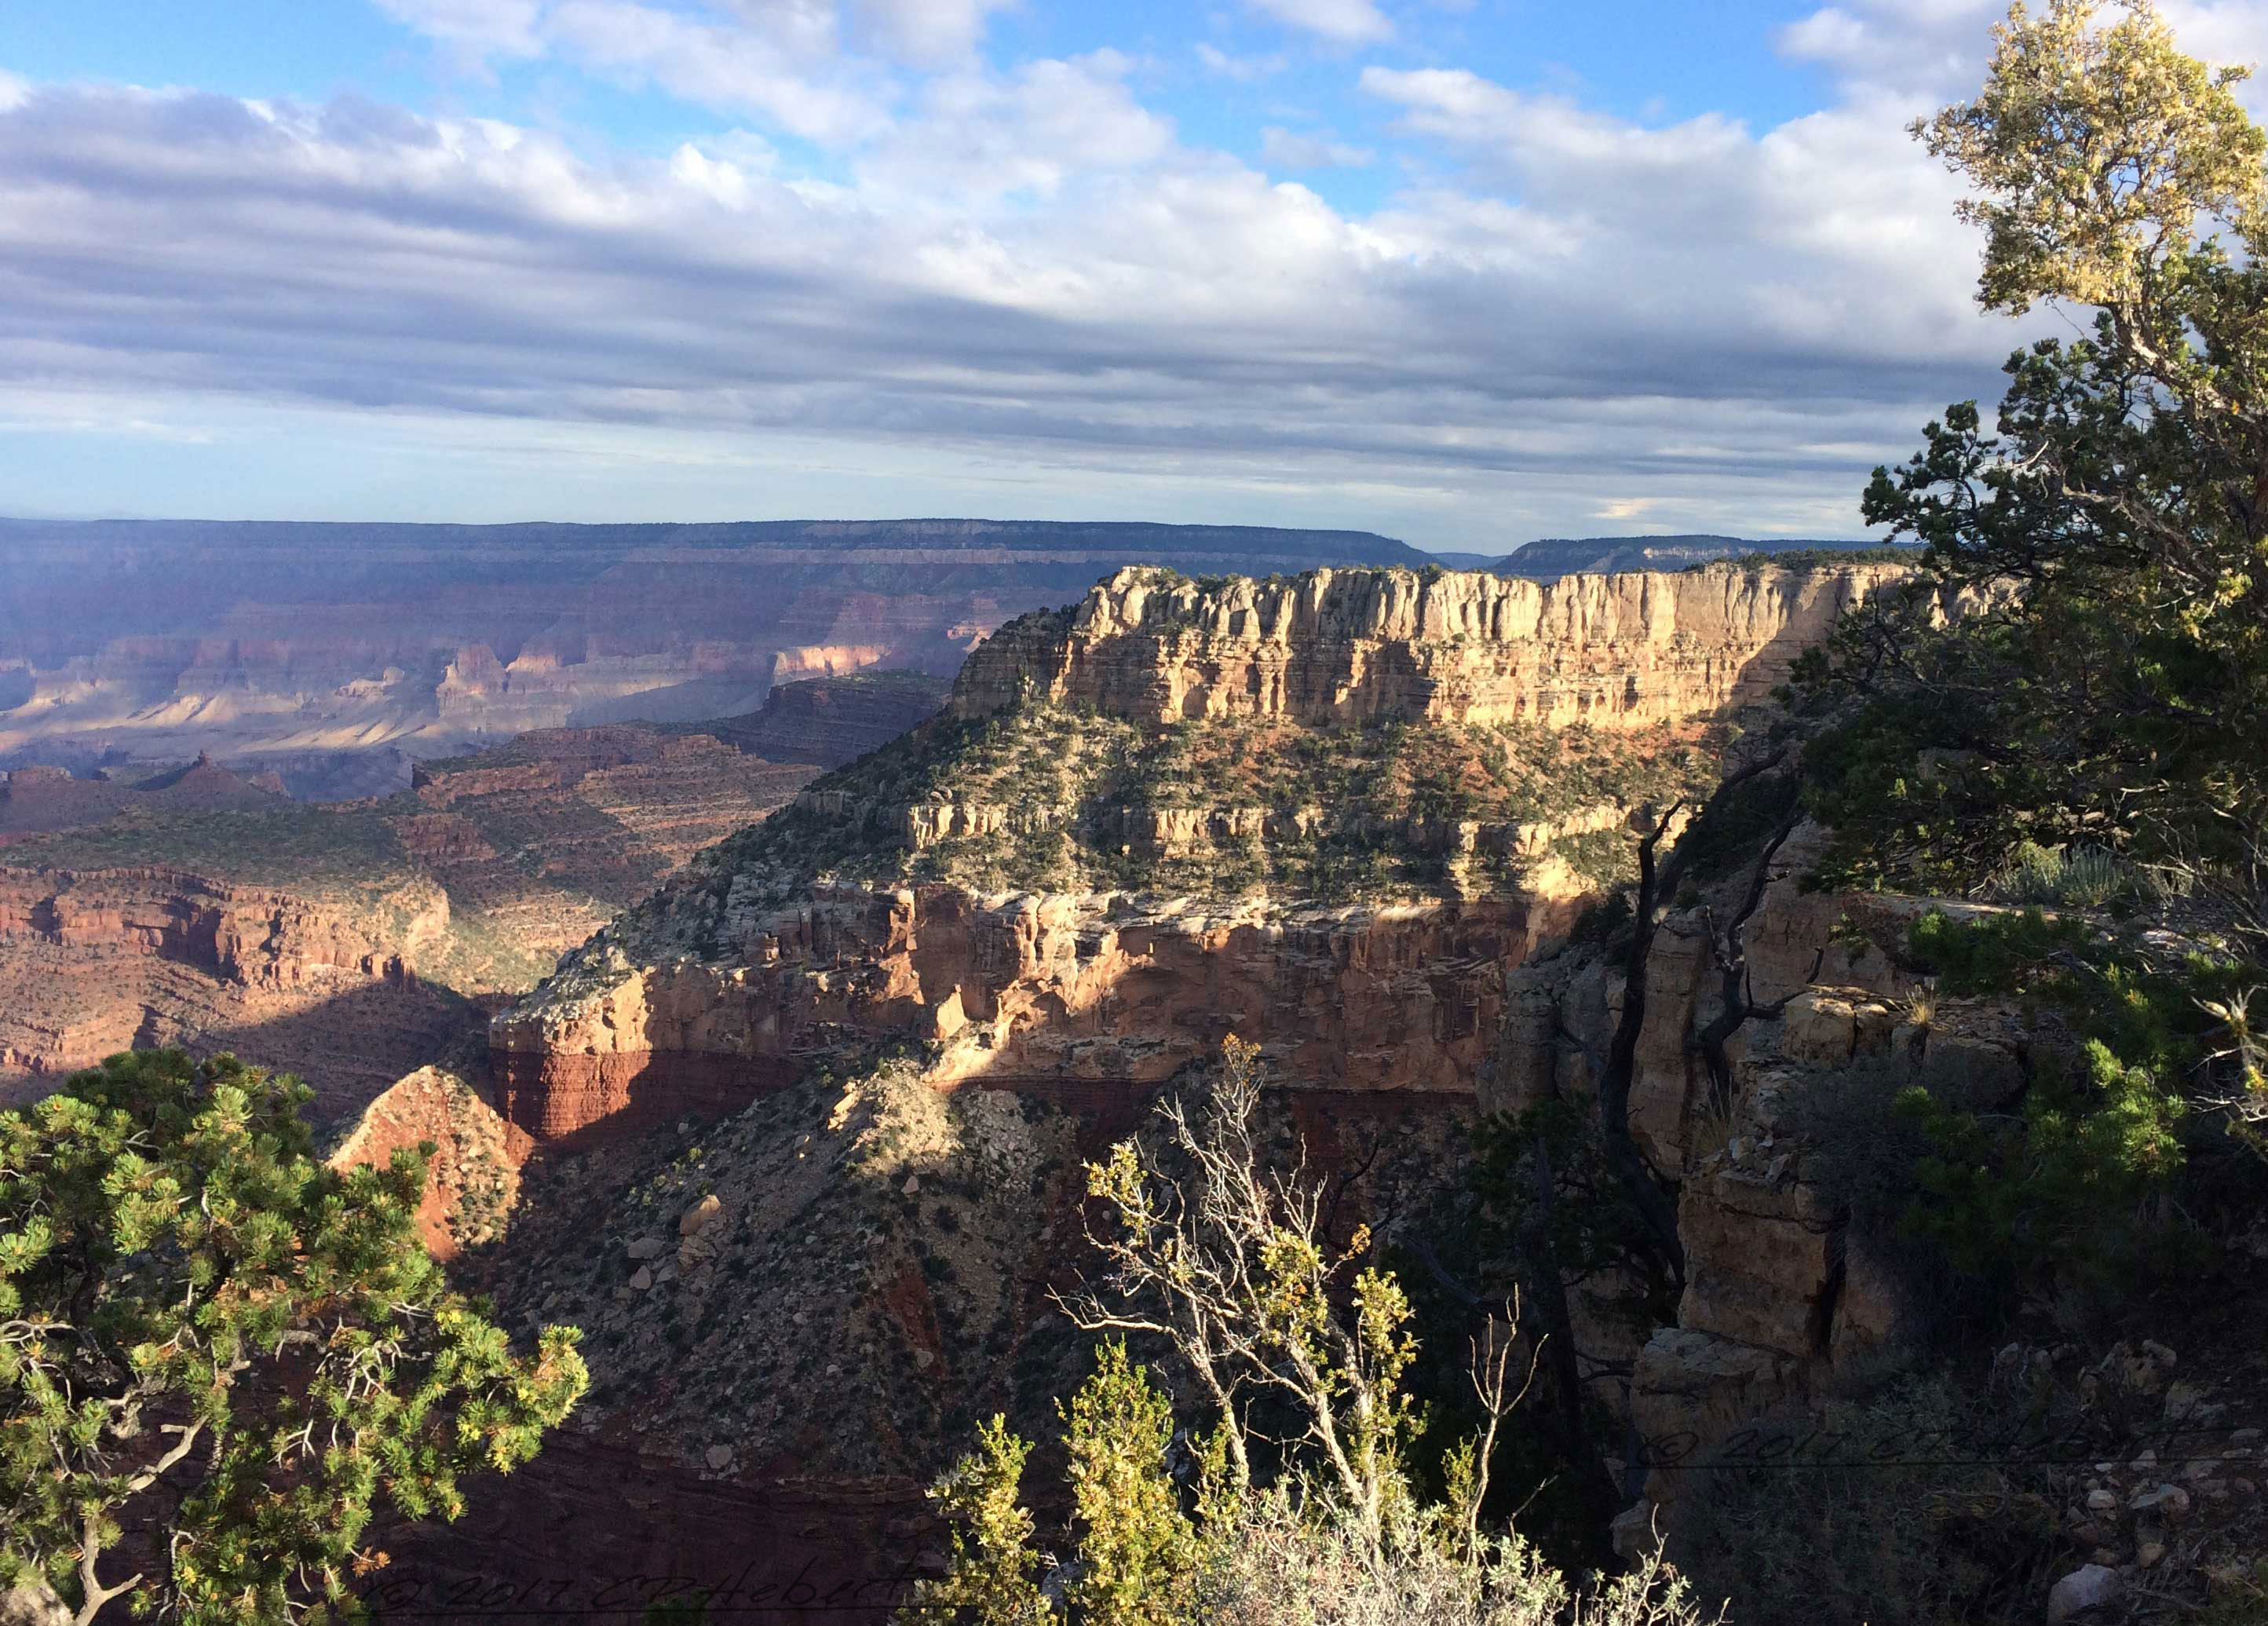 Patience pays off as we wait for the clouds to clear and allow some sunshine to paint the canyon walls.